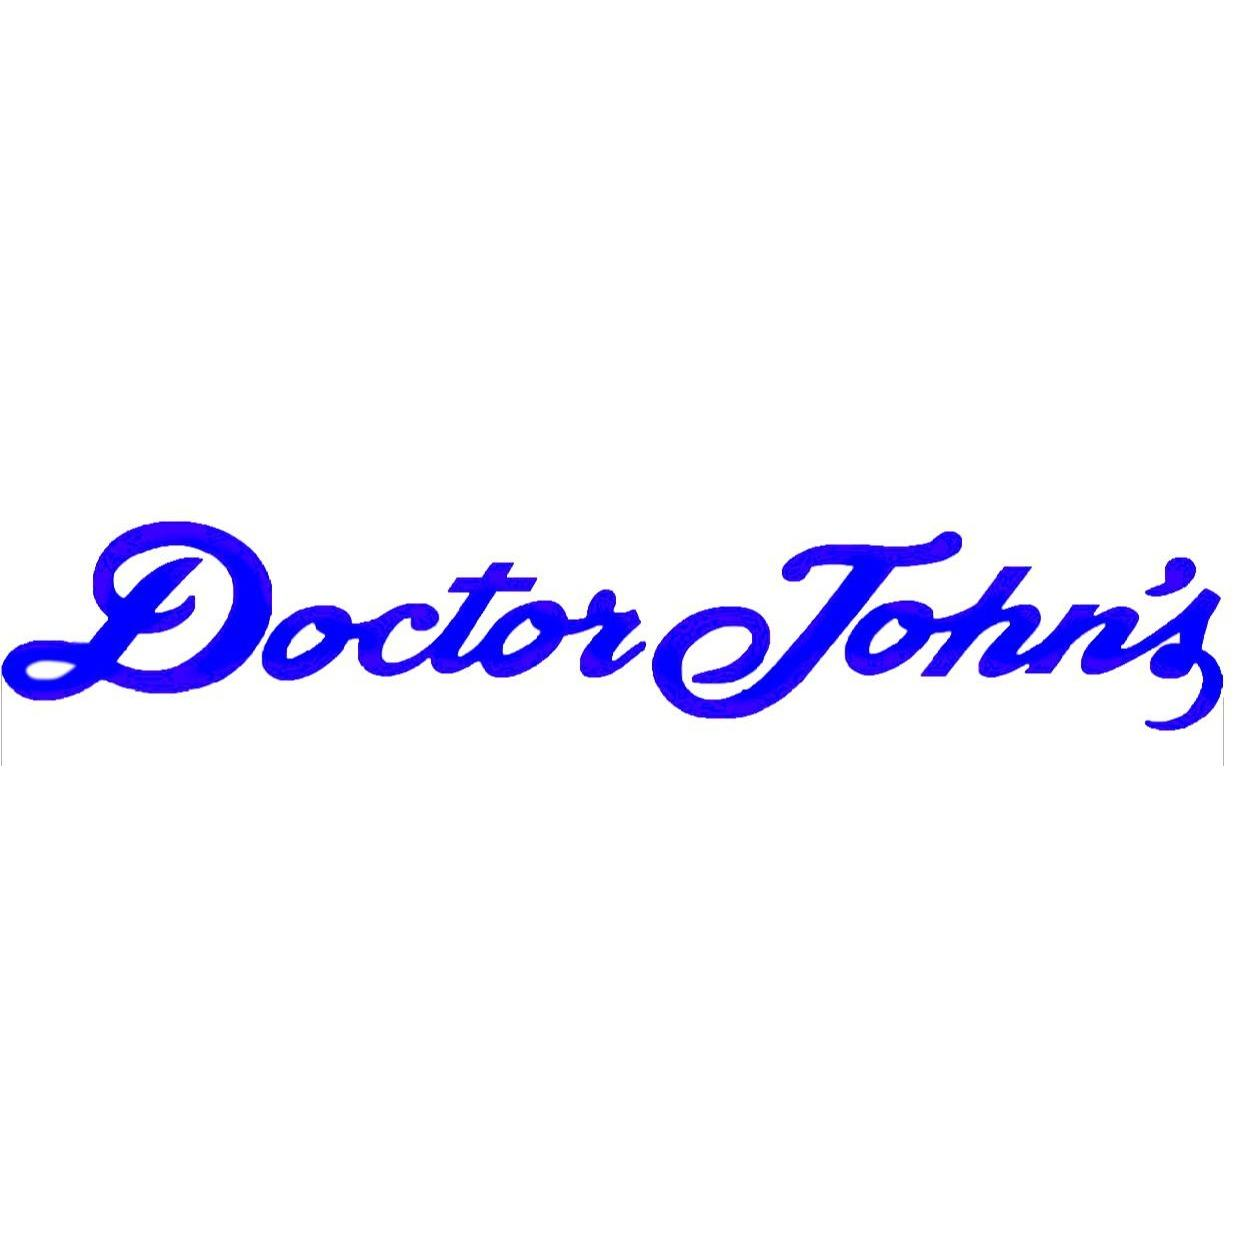 Doctor John's Lingerie & Novelty Boutique